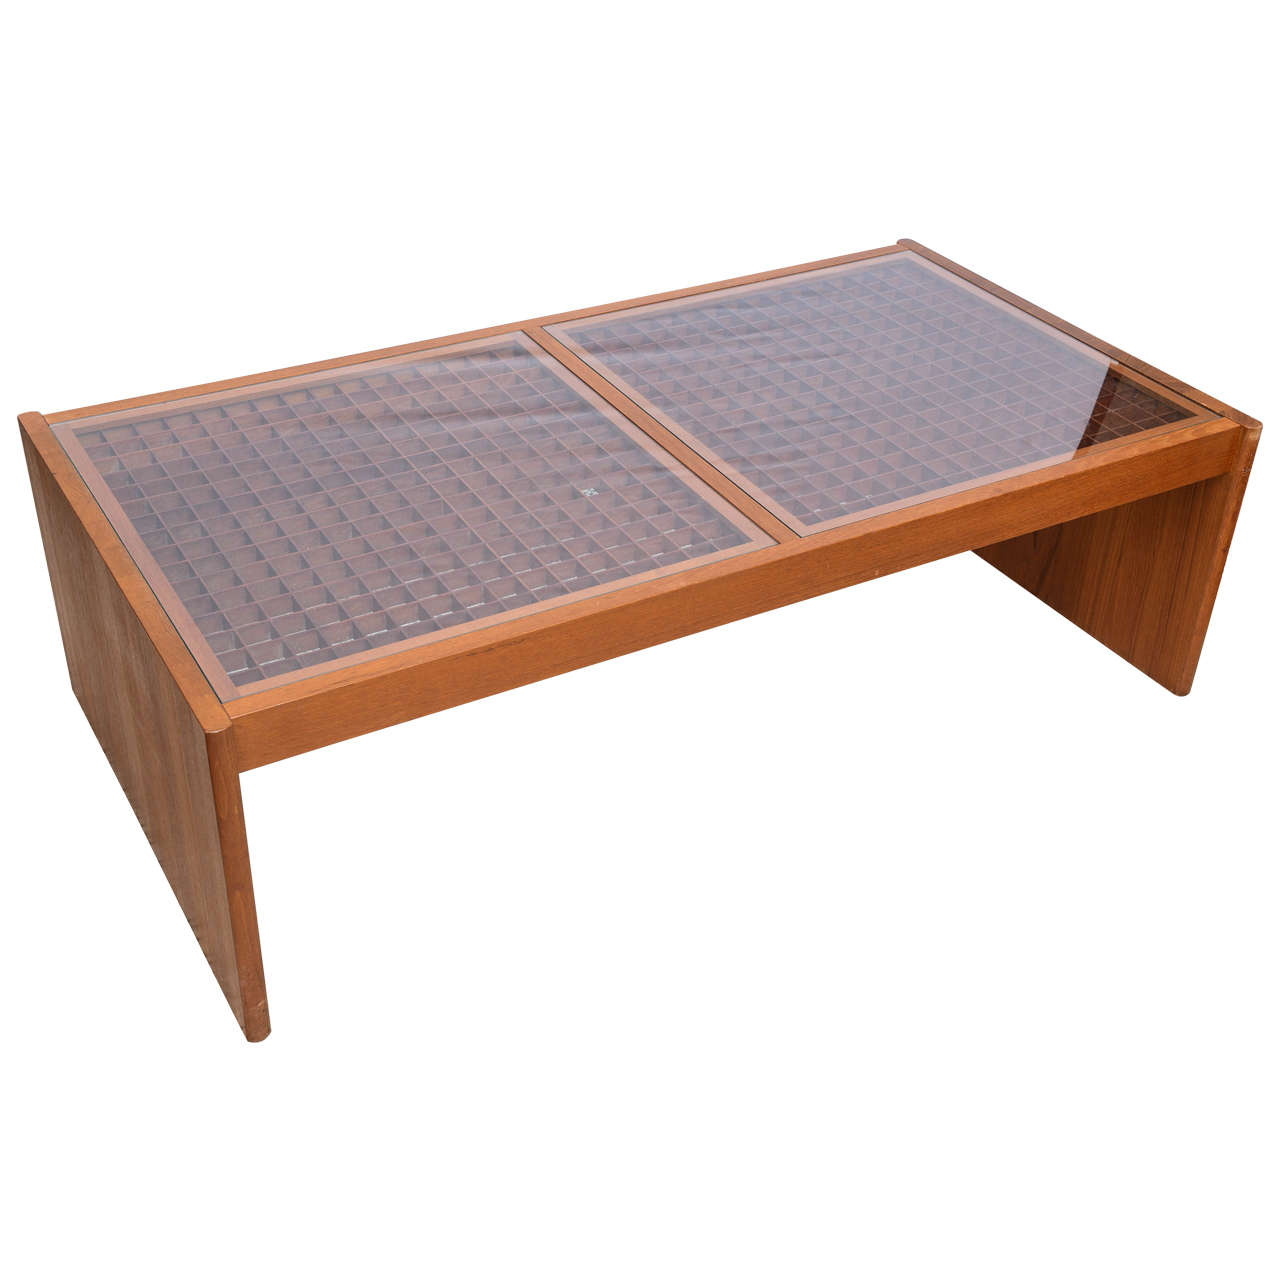 Gorgeous Danish Teak Geometric Large Coffee Table By Komfort 1950s Denmark For Sale At 1stdibs